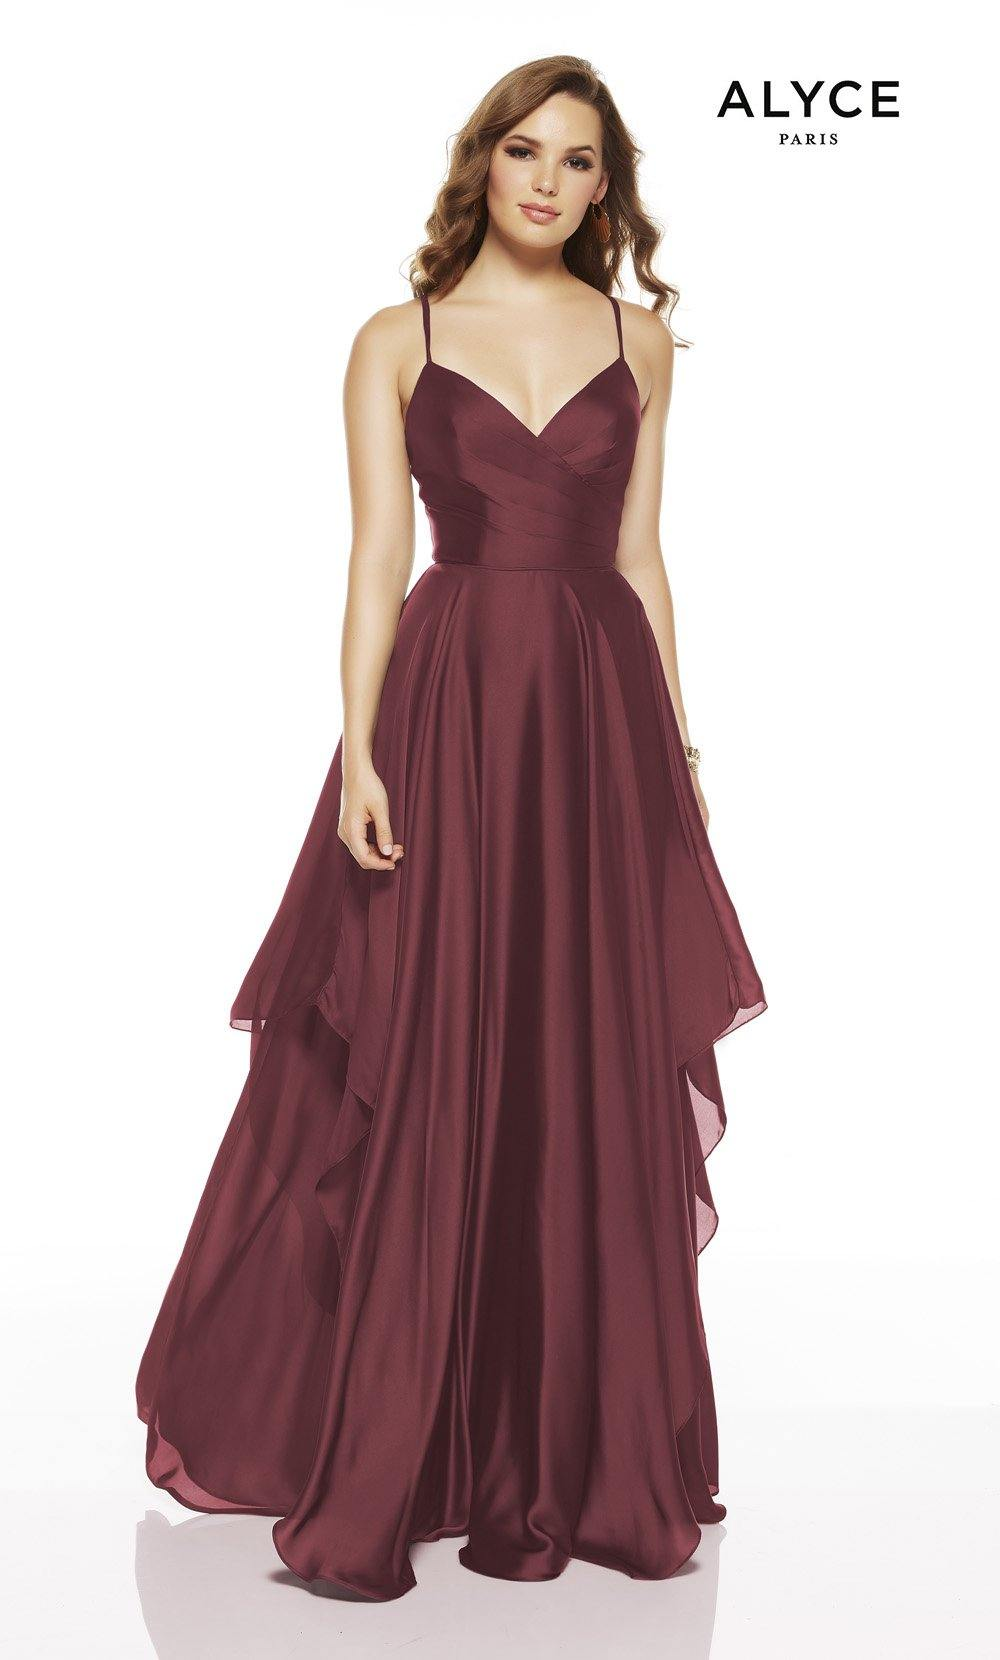 Cinnamon flowy wedding guest dress with a V-neckline